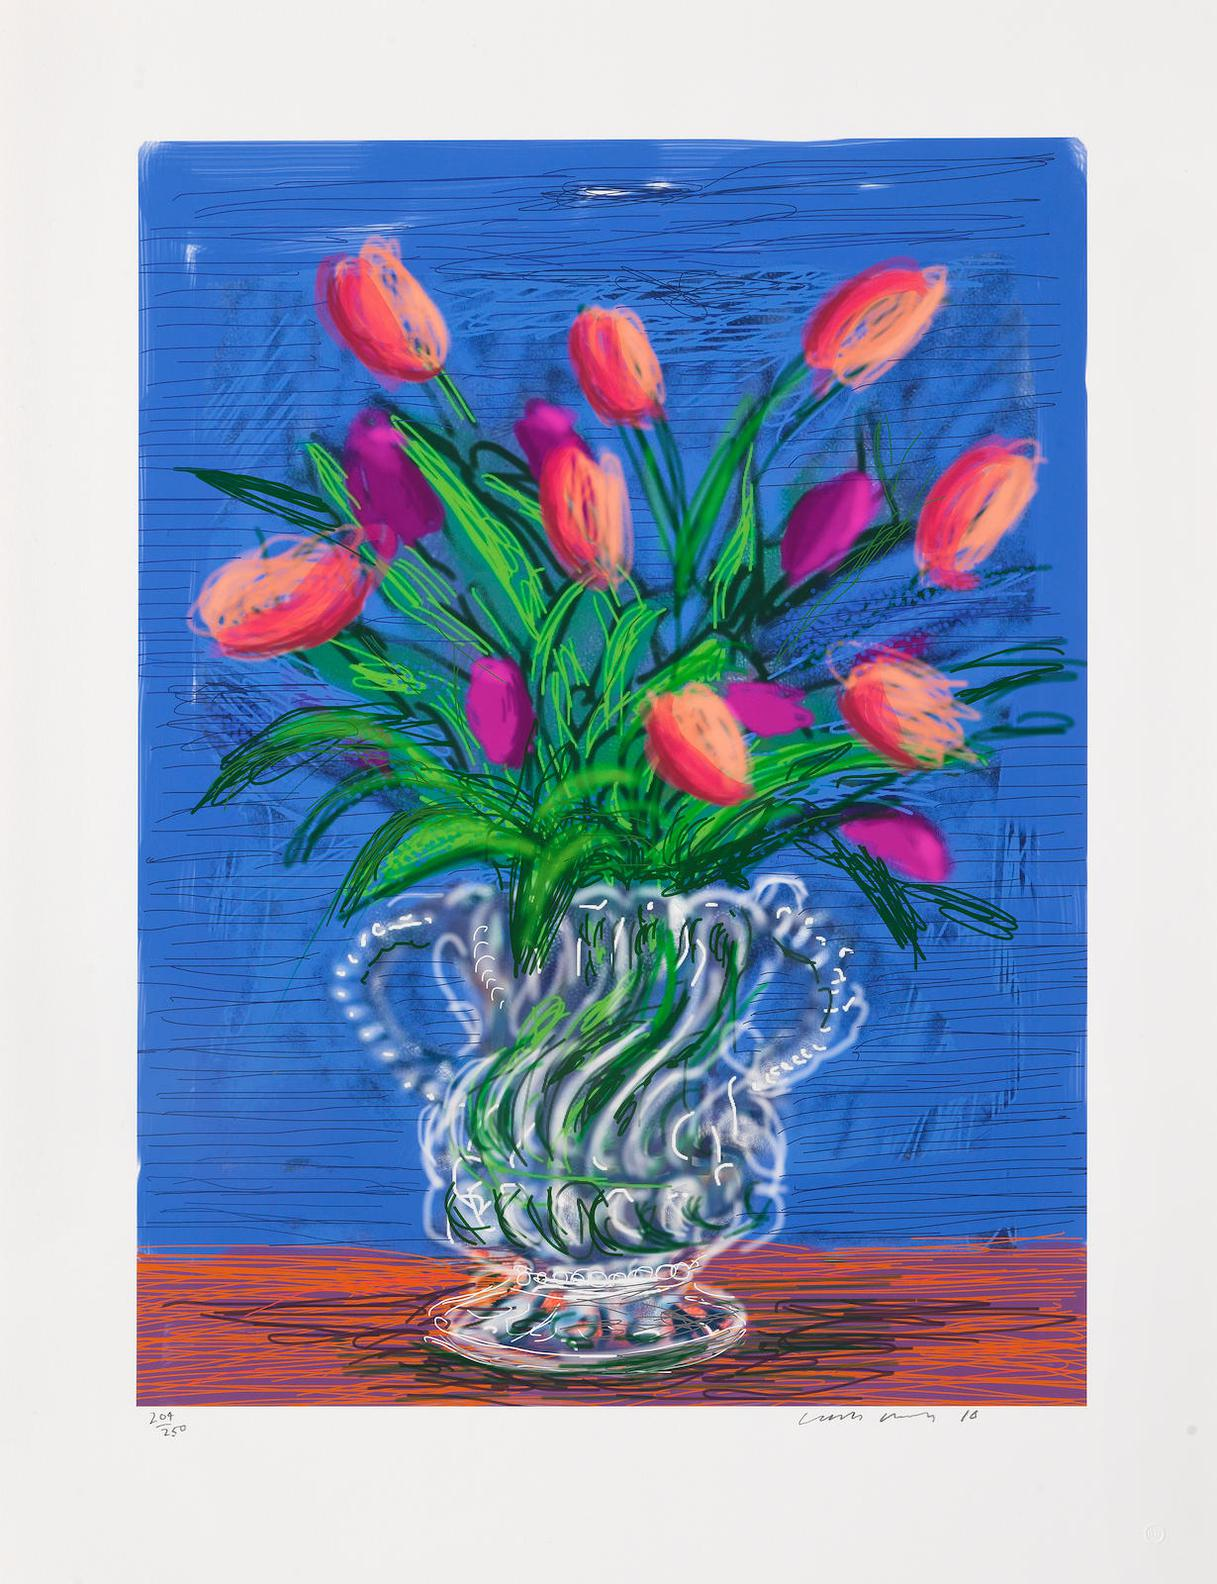 David Hockney-Untitled No.346, From A Bigger Book: Art Edition B-2016